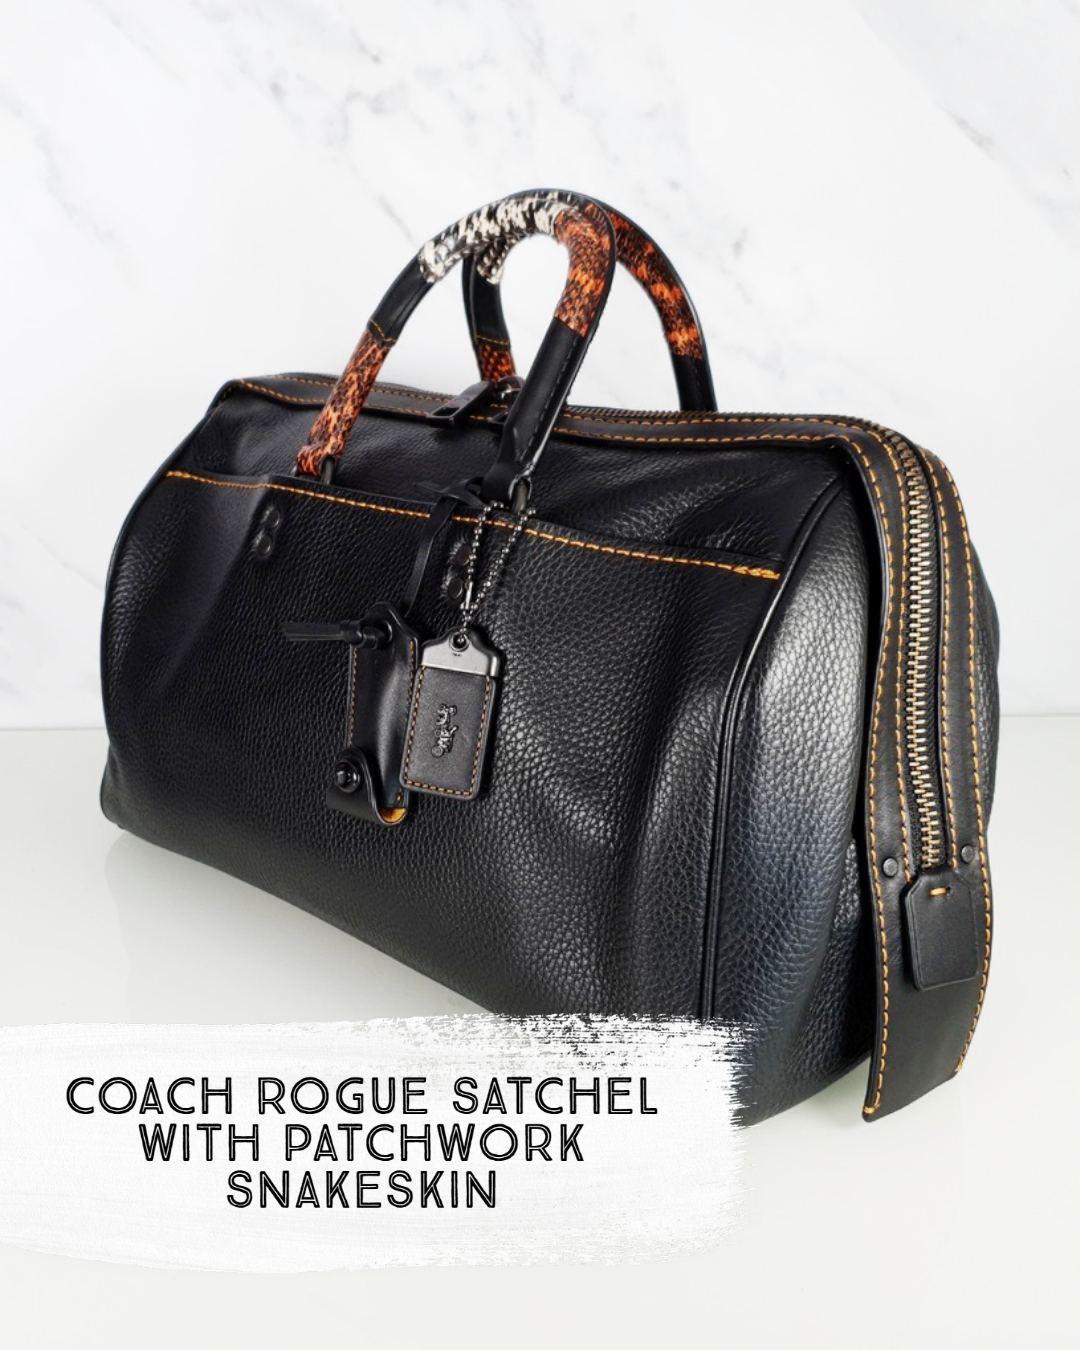 Coach Rogue Satchel in Black Pebble Leather With Patchwork Snakeskin Handle - Essex Fashion House